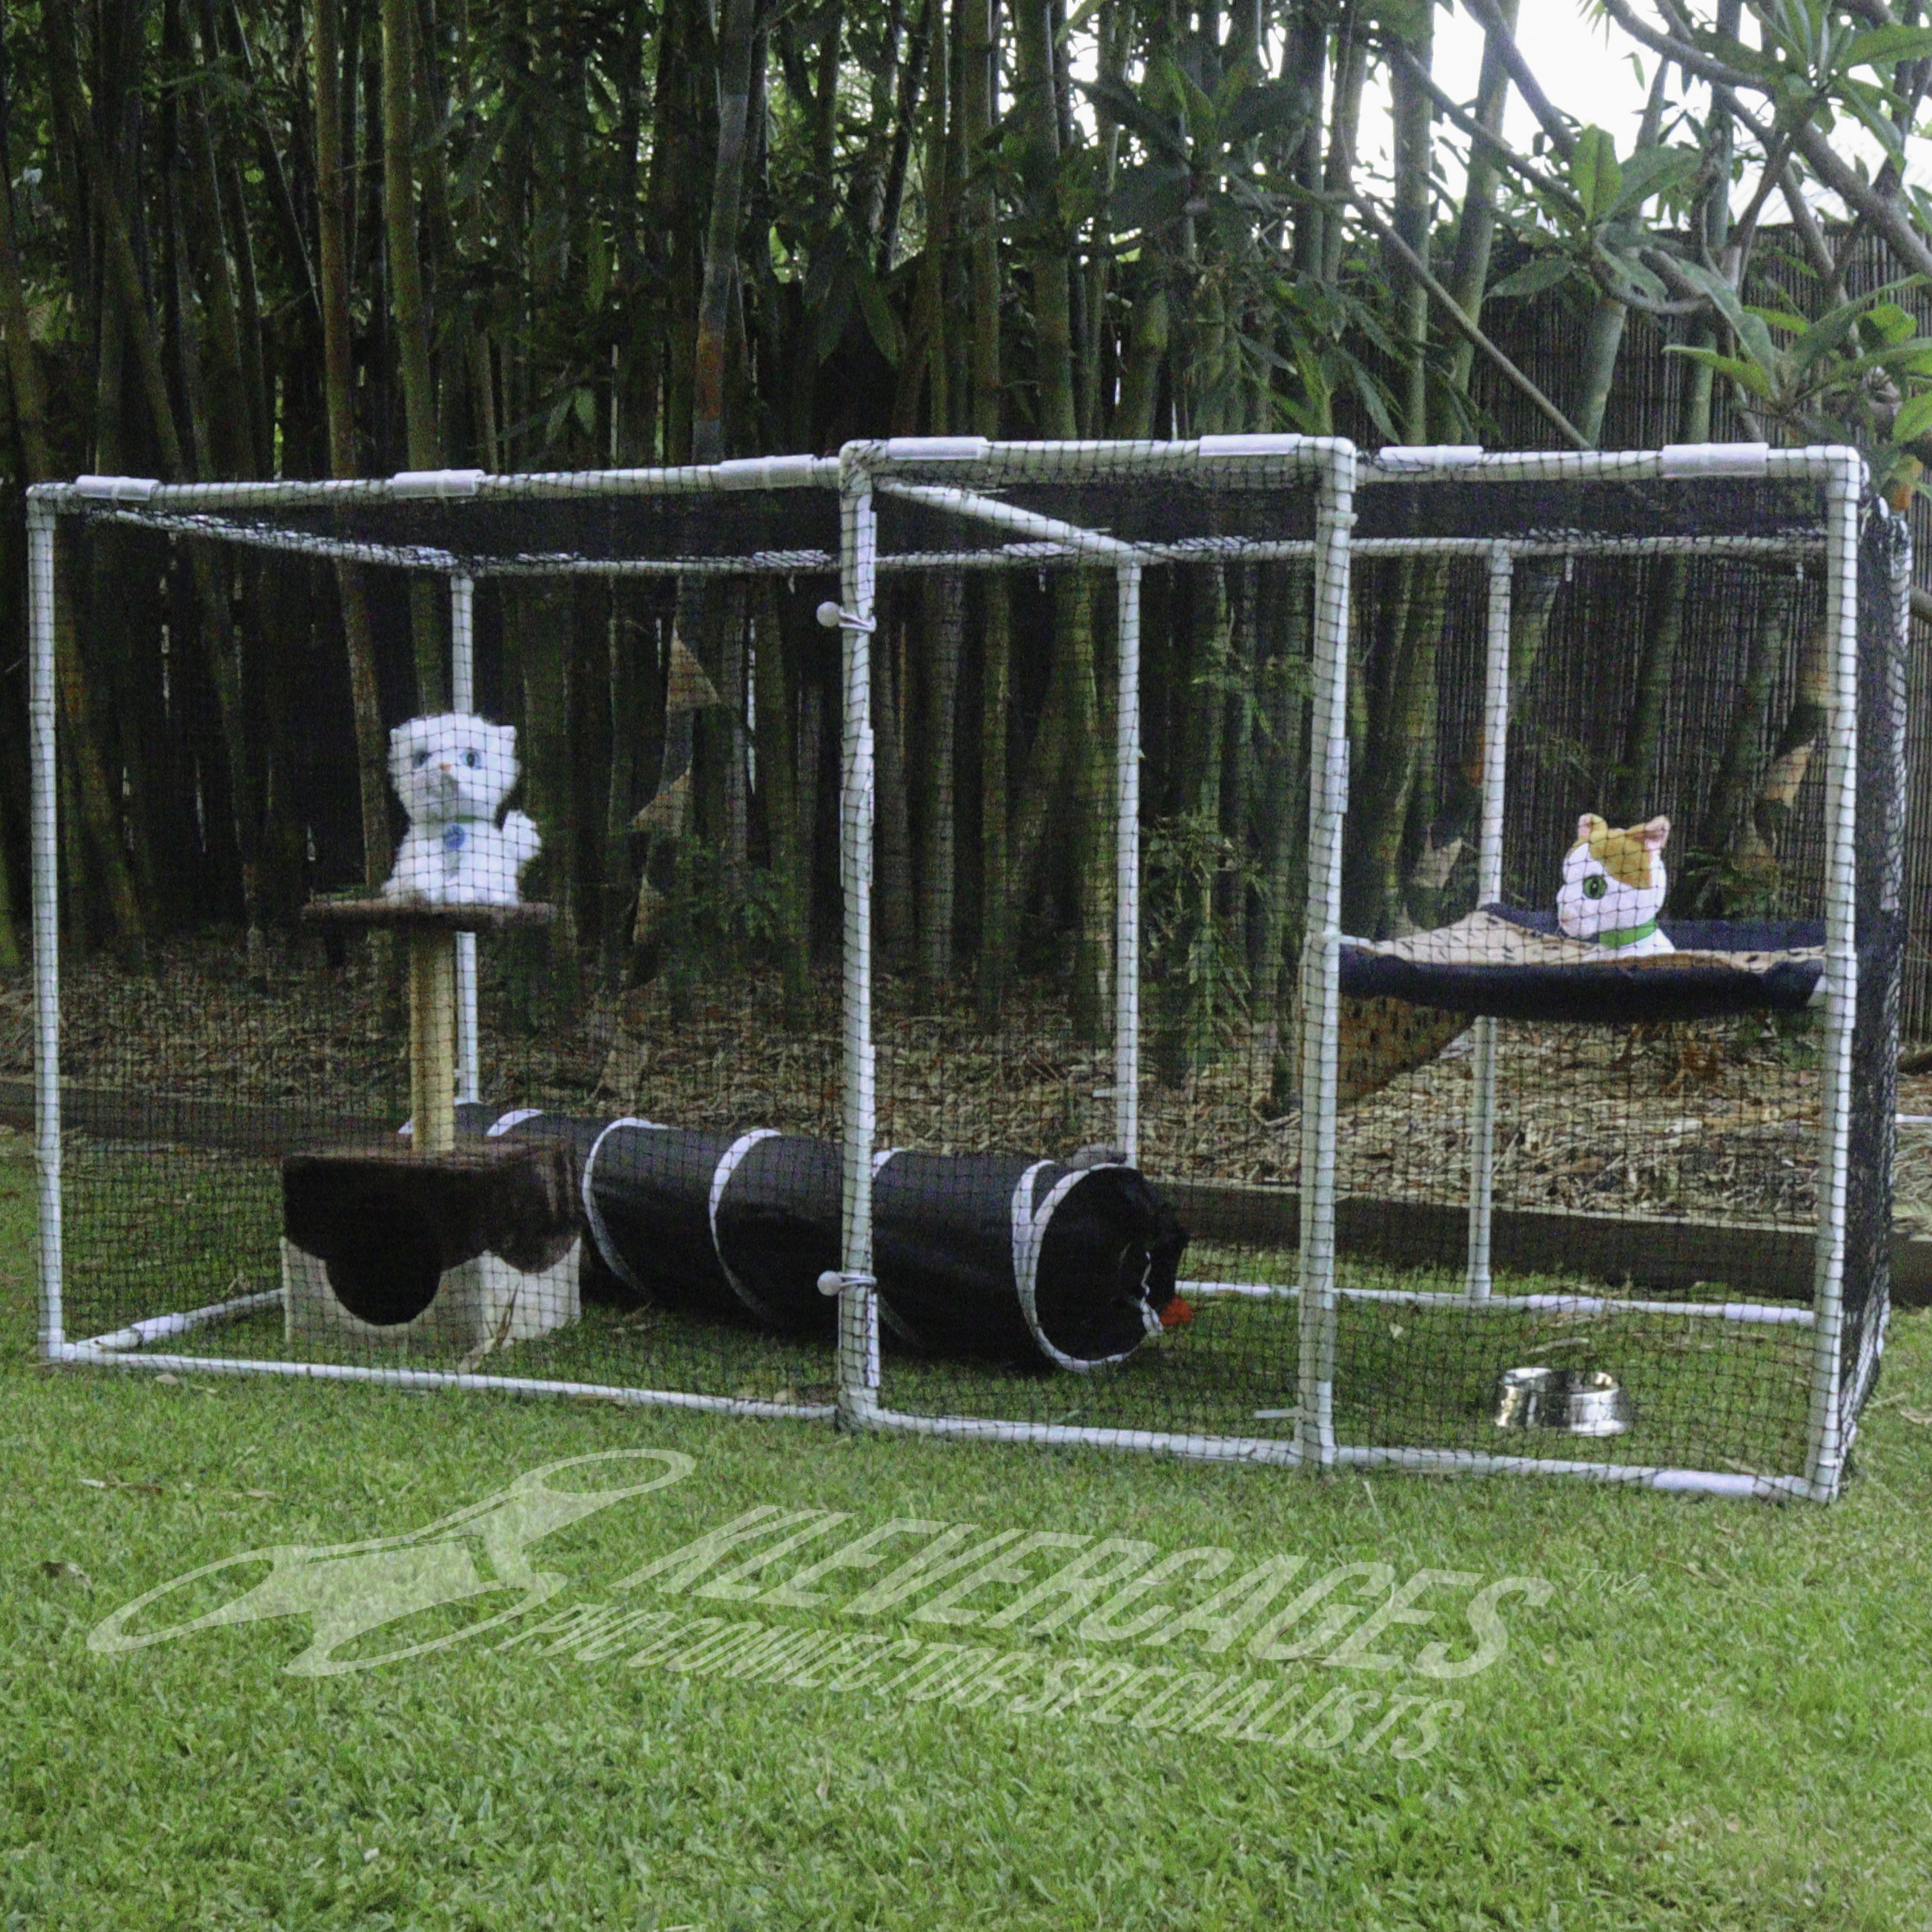 Catio outdoor cat enclosure kit build with Klever Connectors 3ways, l tees, hinges, bungee balls and  elbows